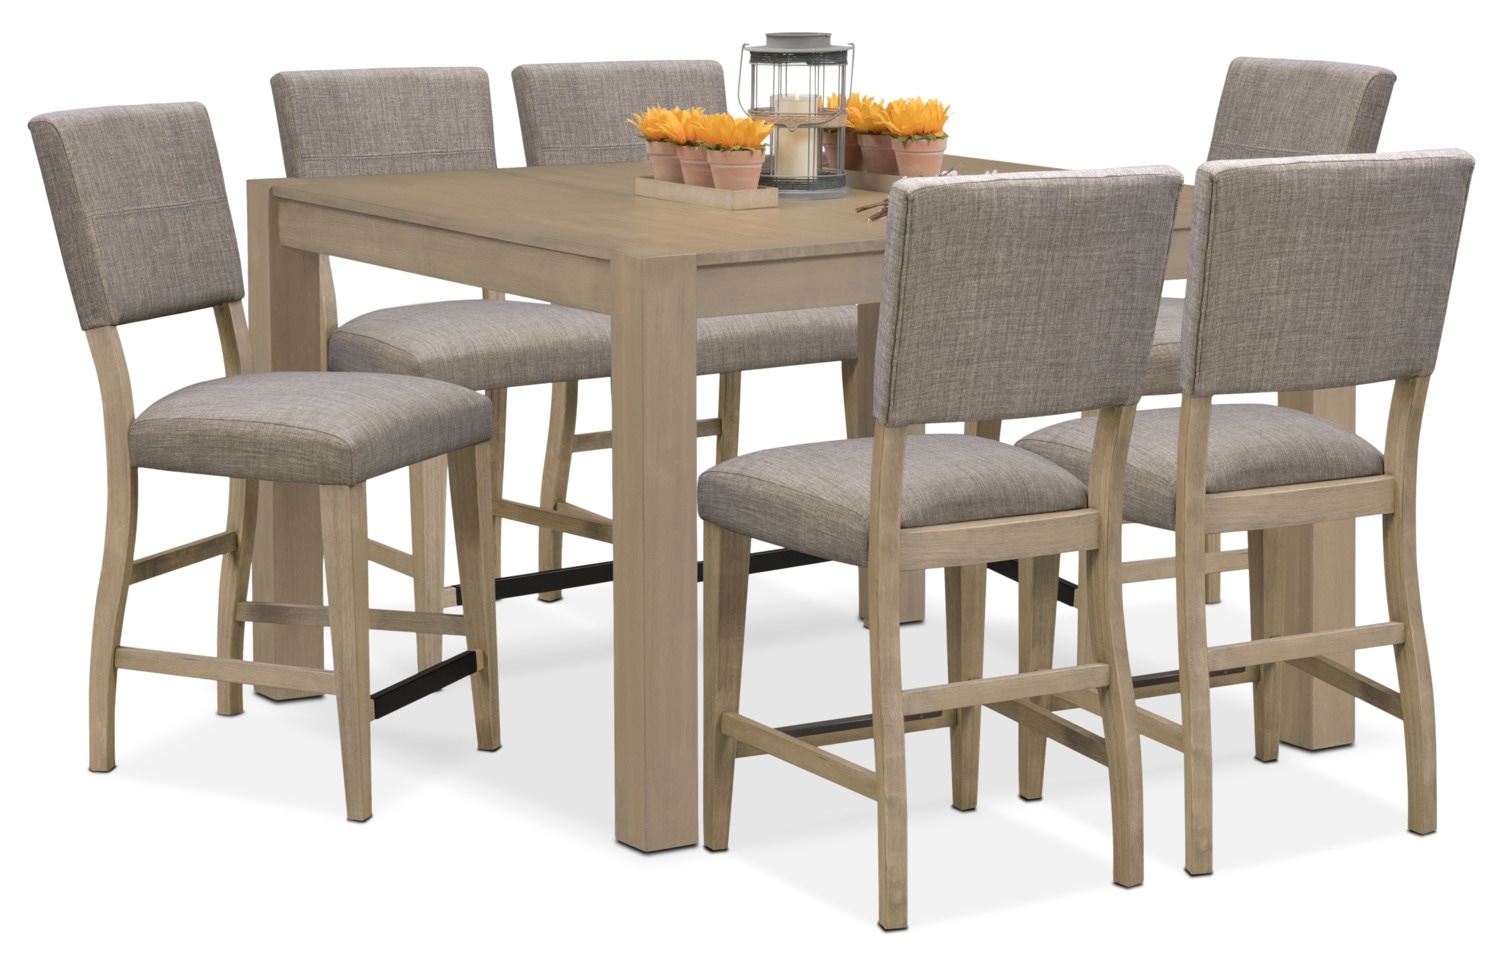 Tribeca Counter Height Dining Table And 6 Upholstered Dining Chairs Intended For Current Carson Counter Height Tables (View 23 of 25)